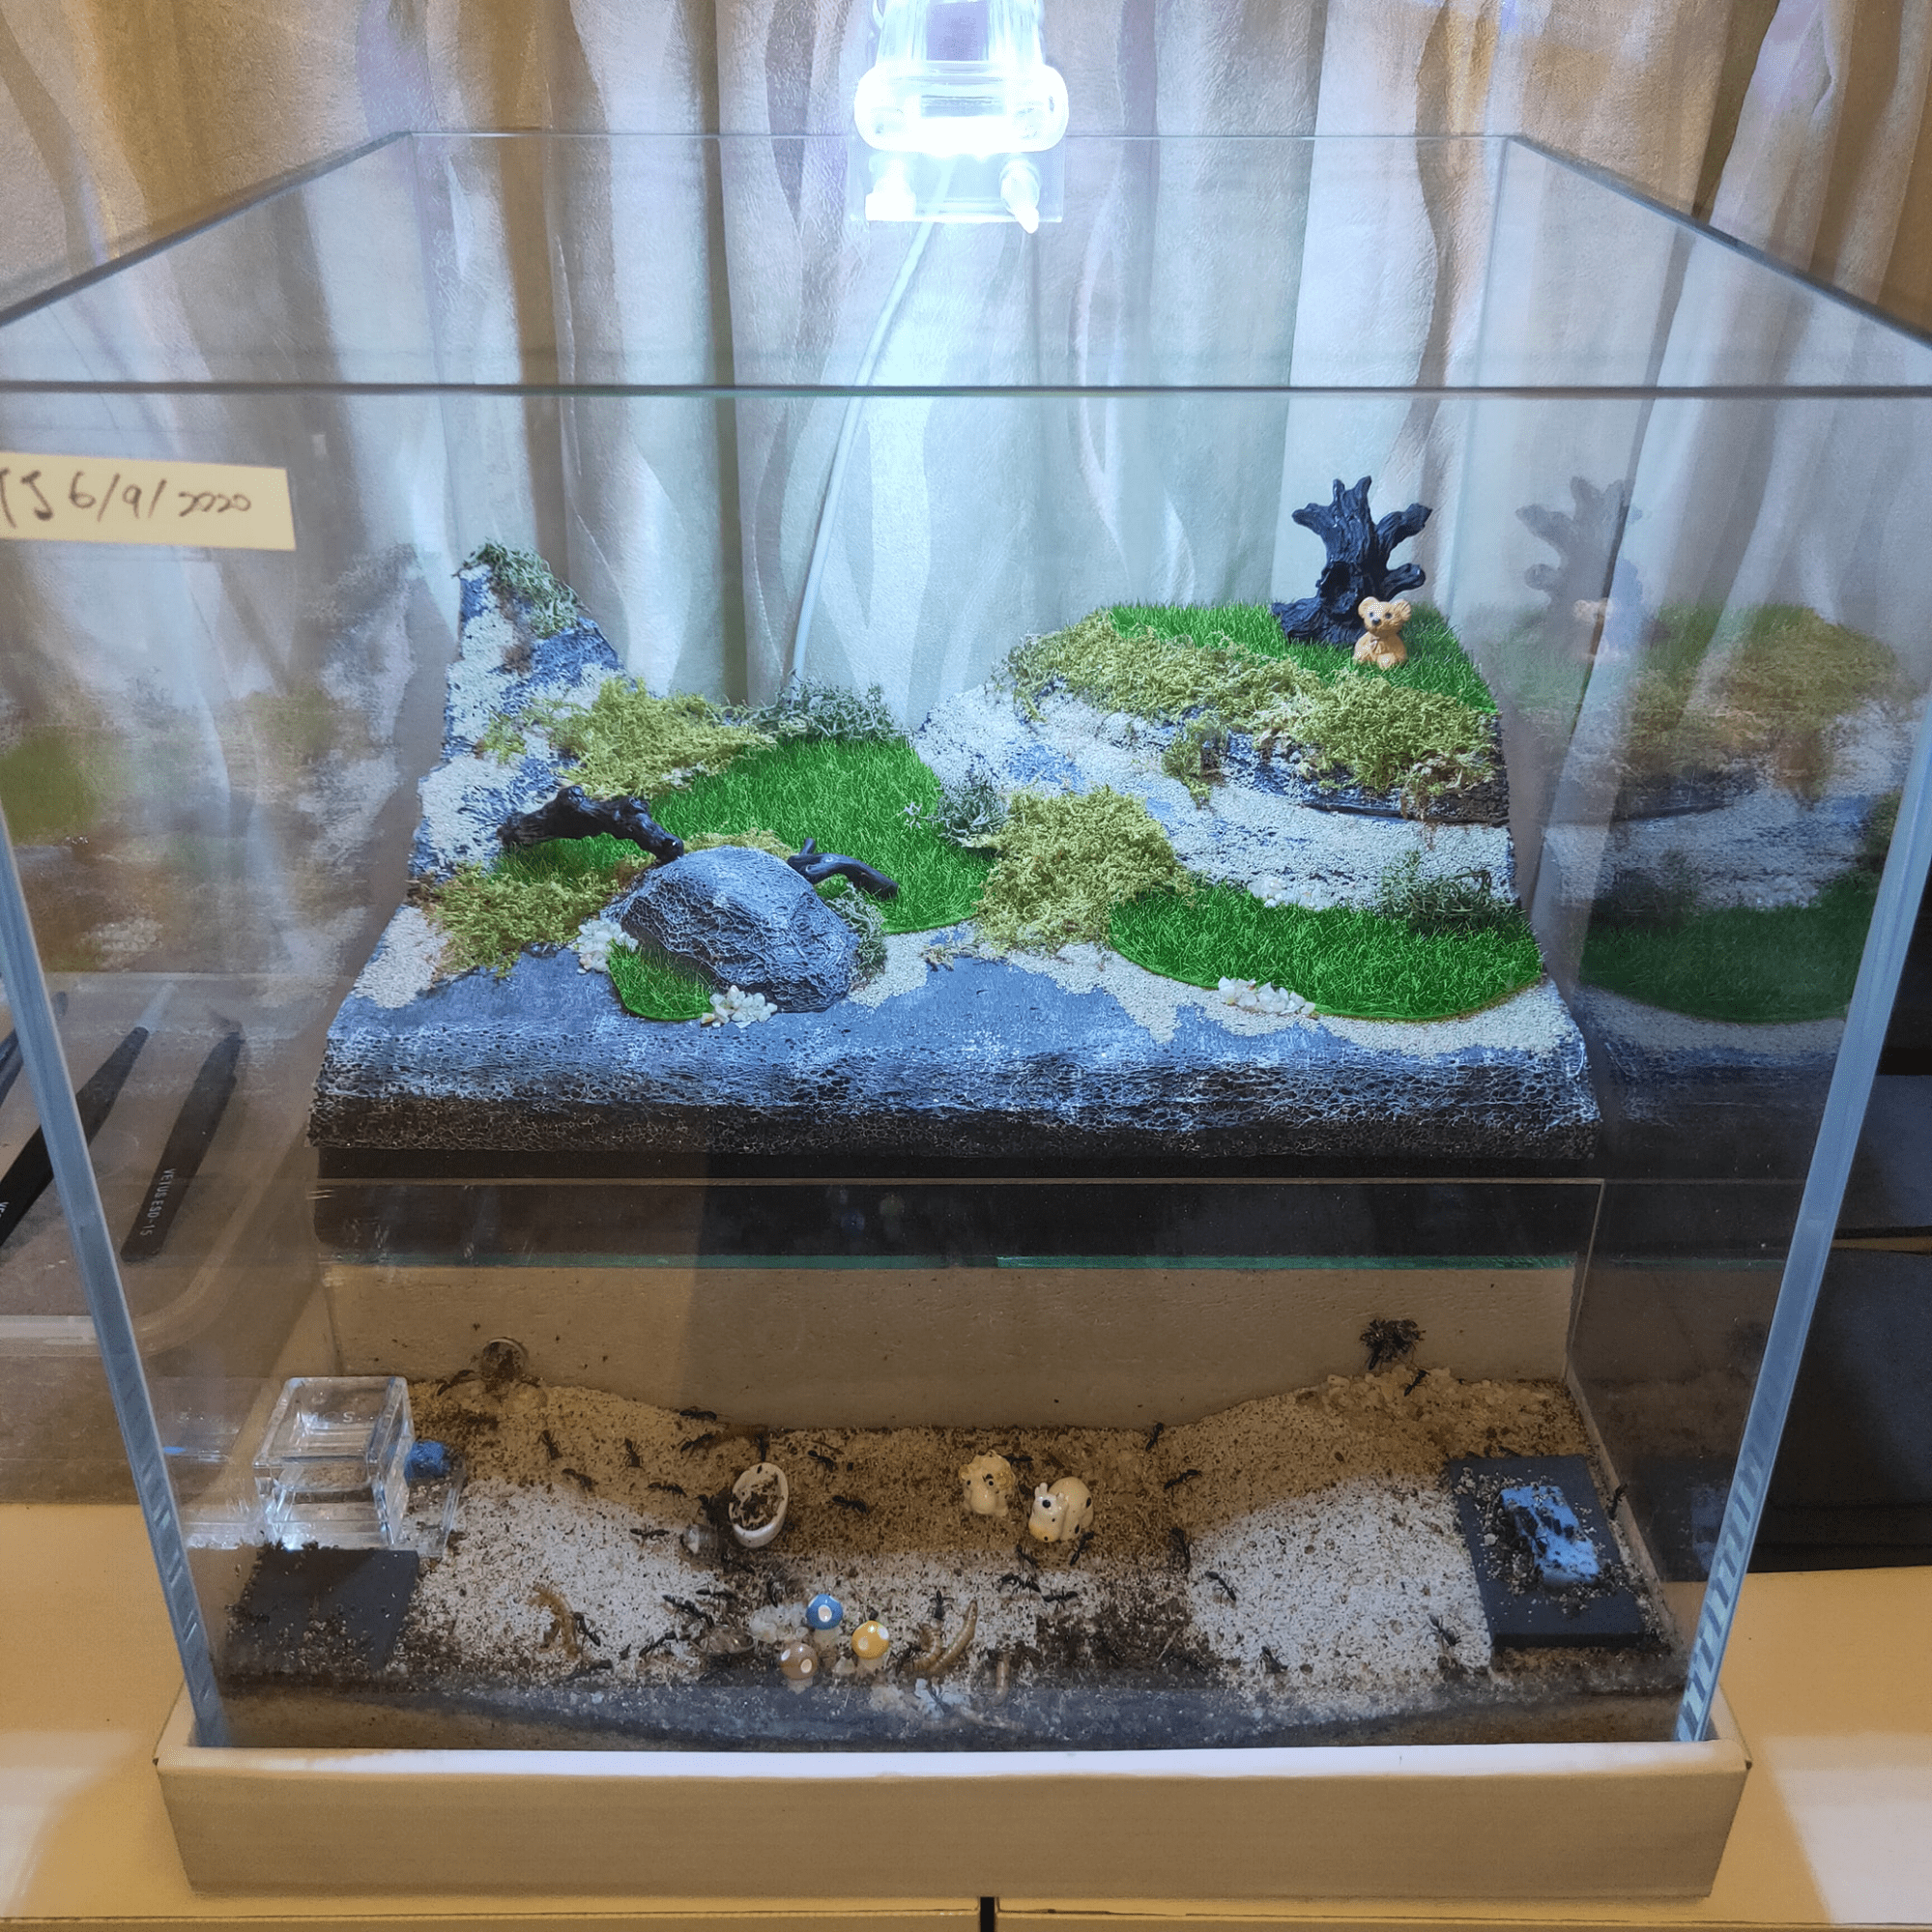 Legally Owned Pets In SG - Ant farm